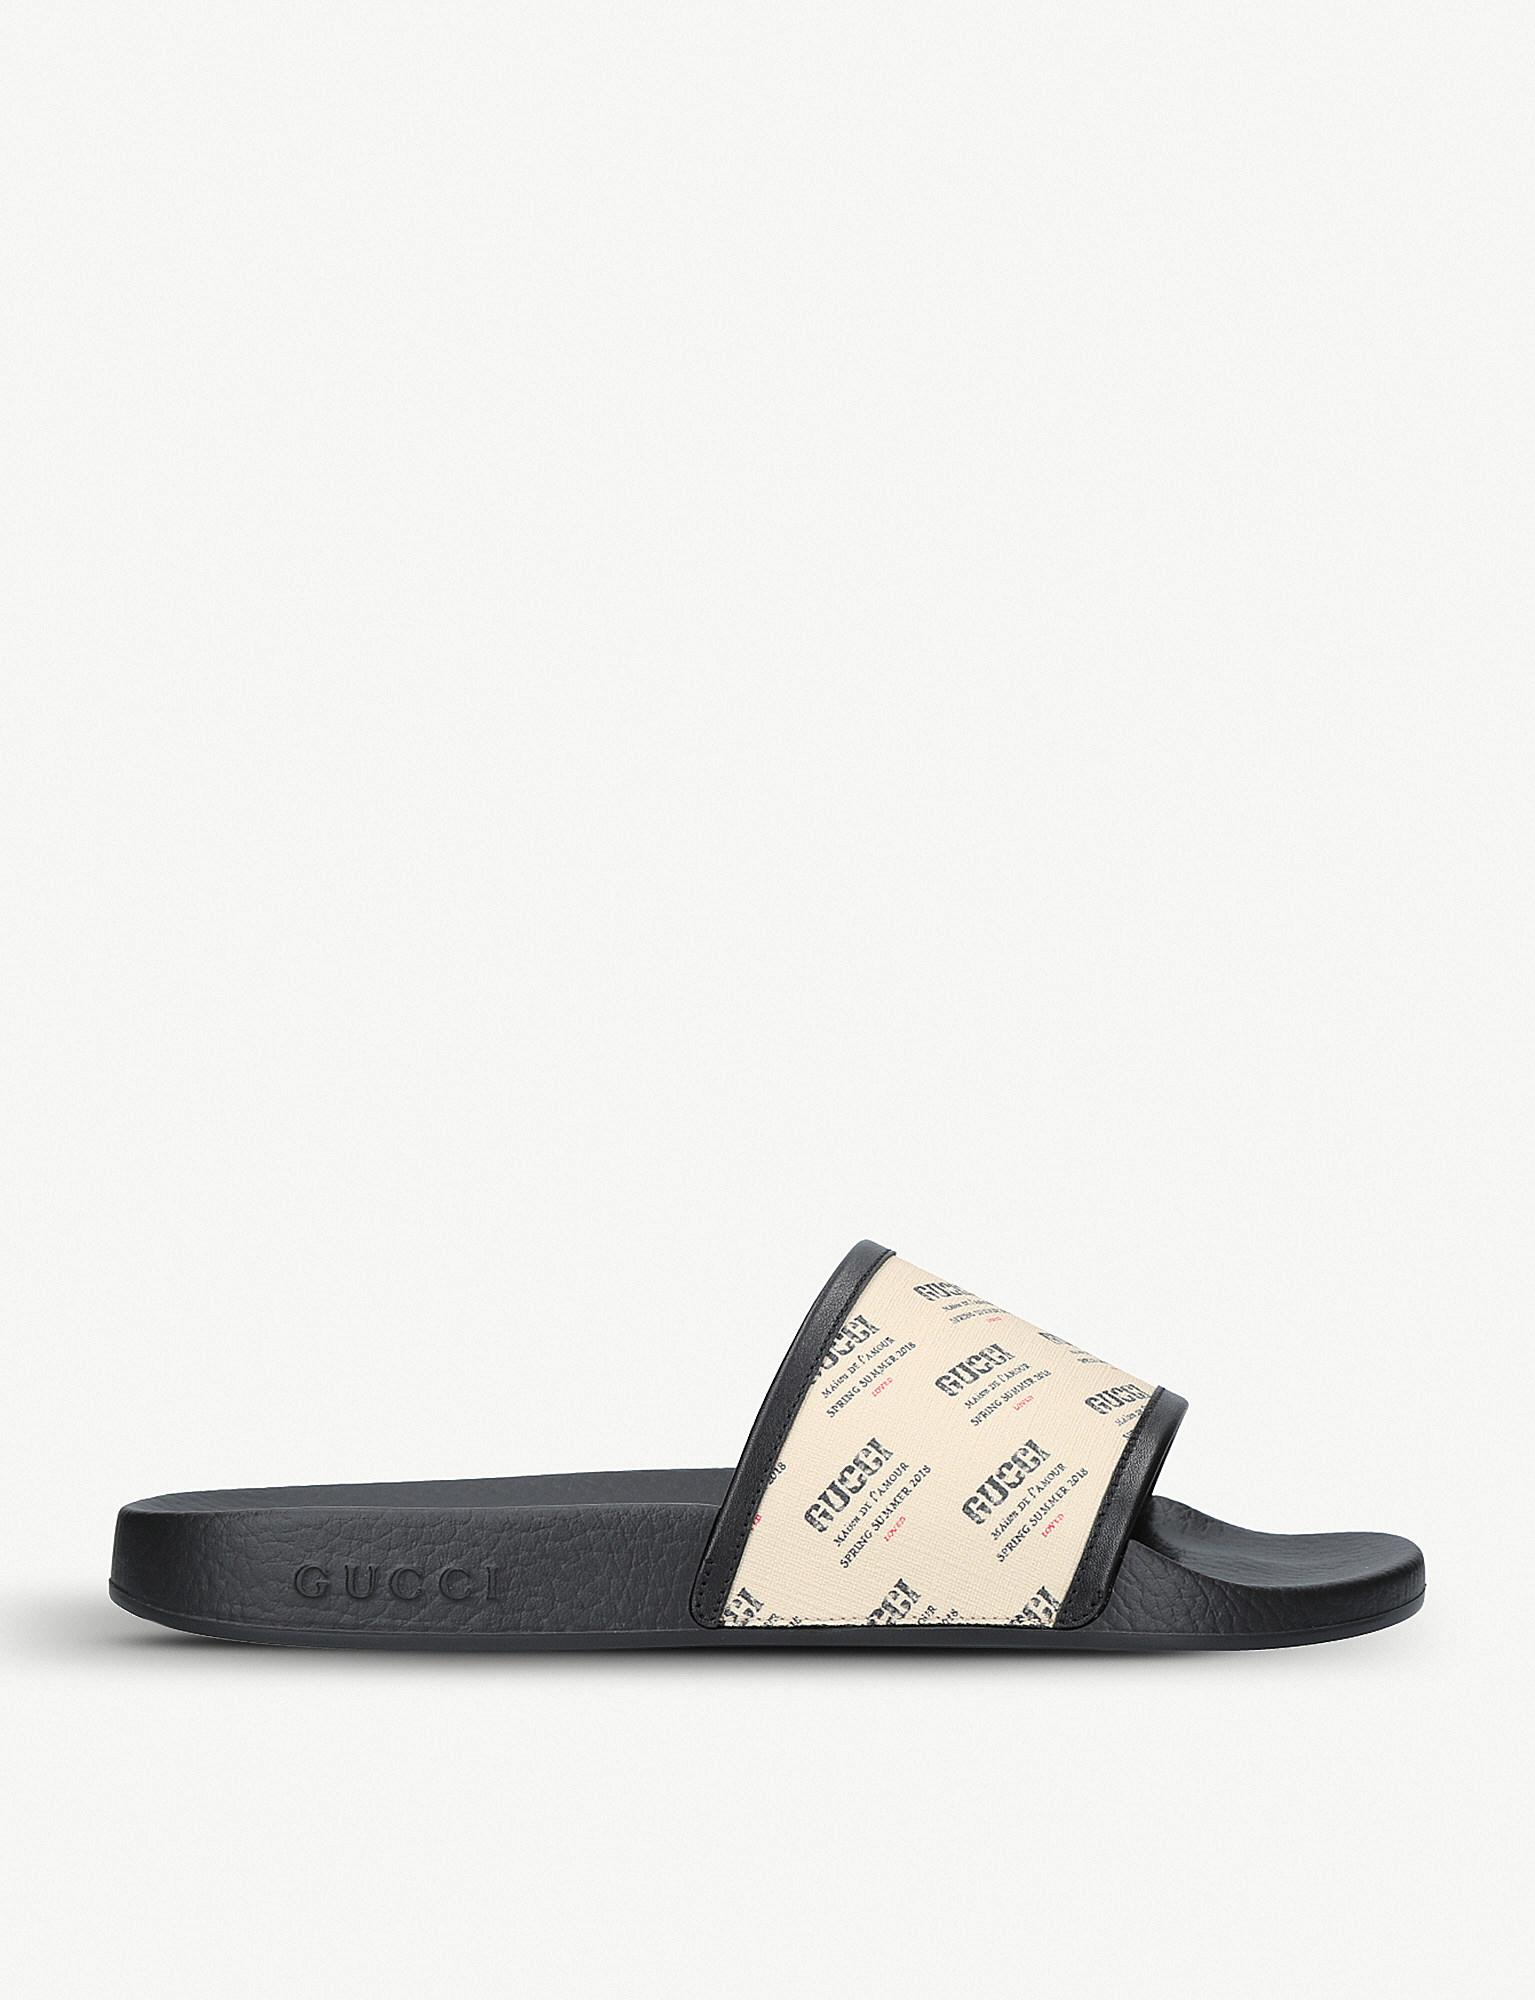 44885e0364f Gucci - White Pursuit Printed Rubber Sliders - Lyst. View fullscreen